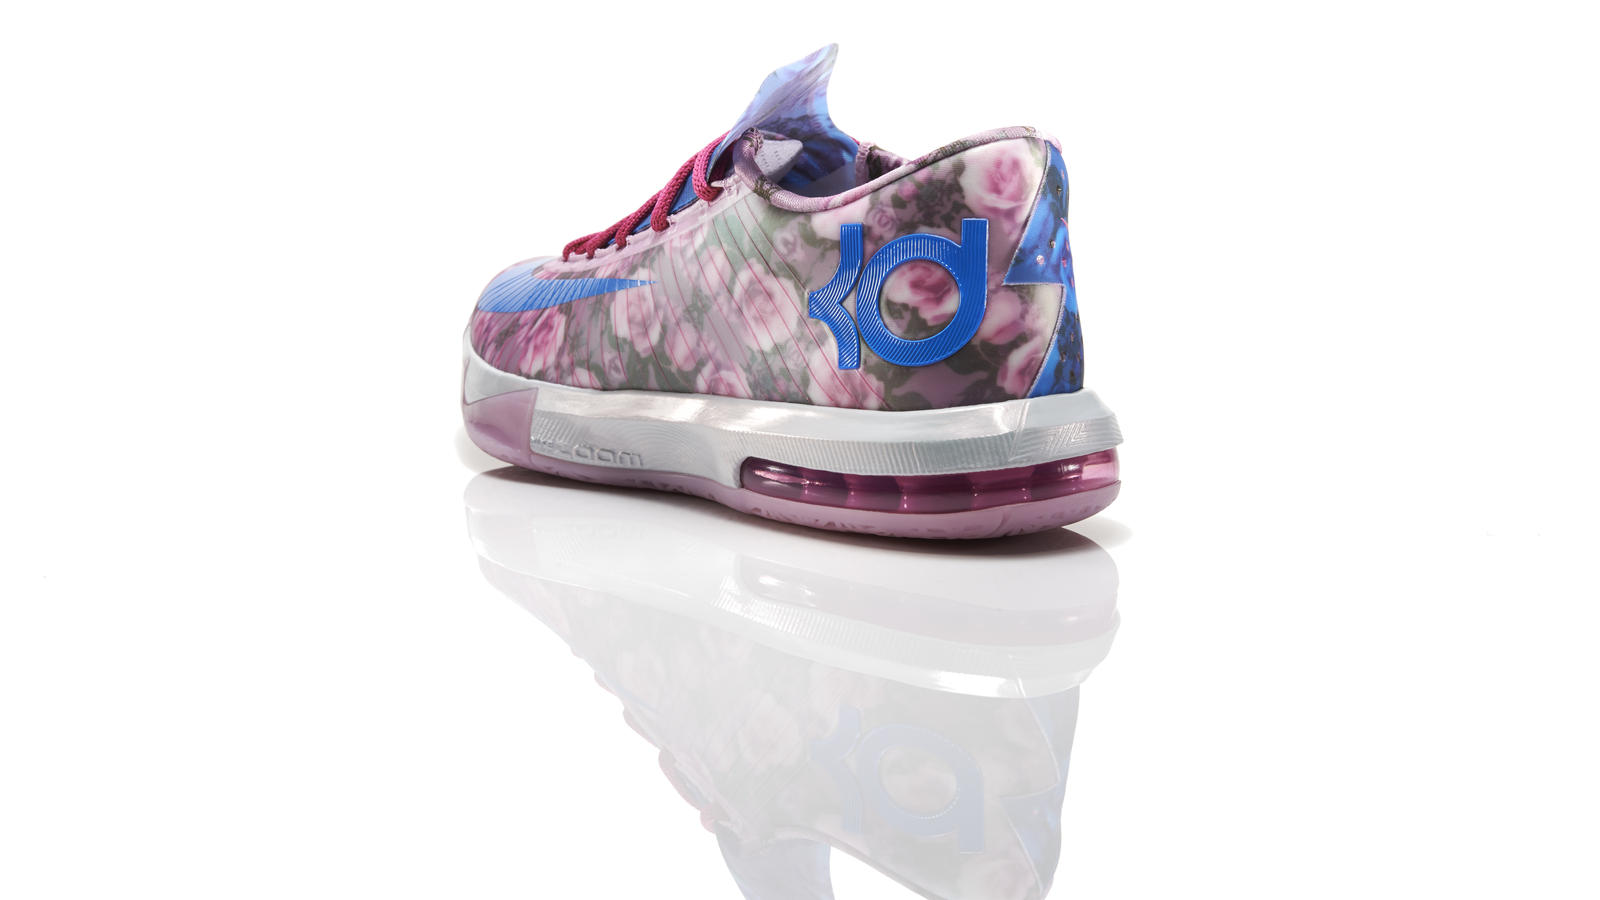 2a7b5693a33 kdvi aunt pearl 600 back 14136. kdvi auntpearl 600 outsole 13332